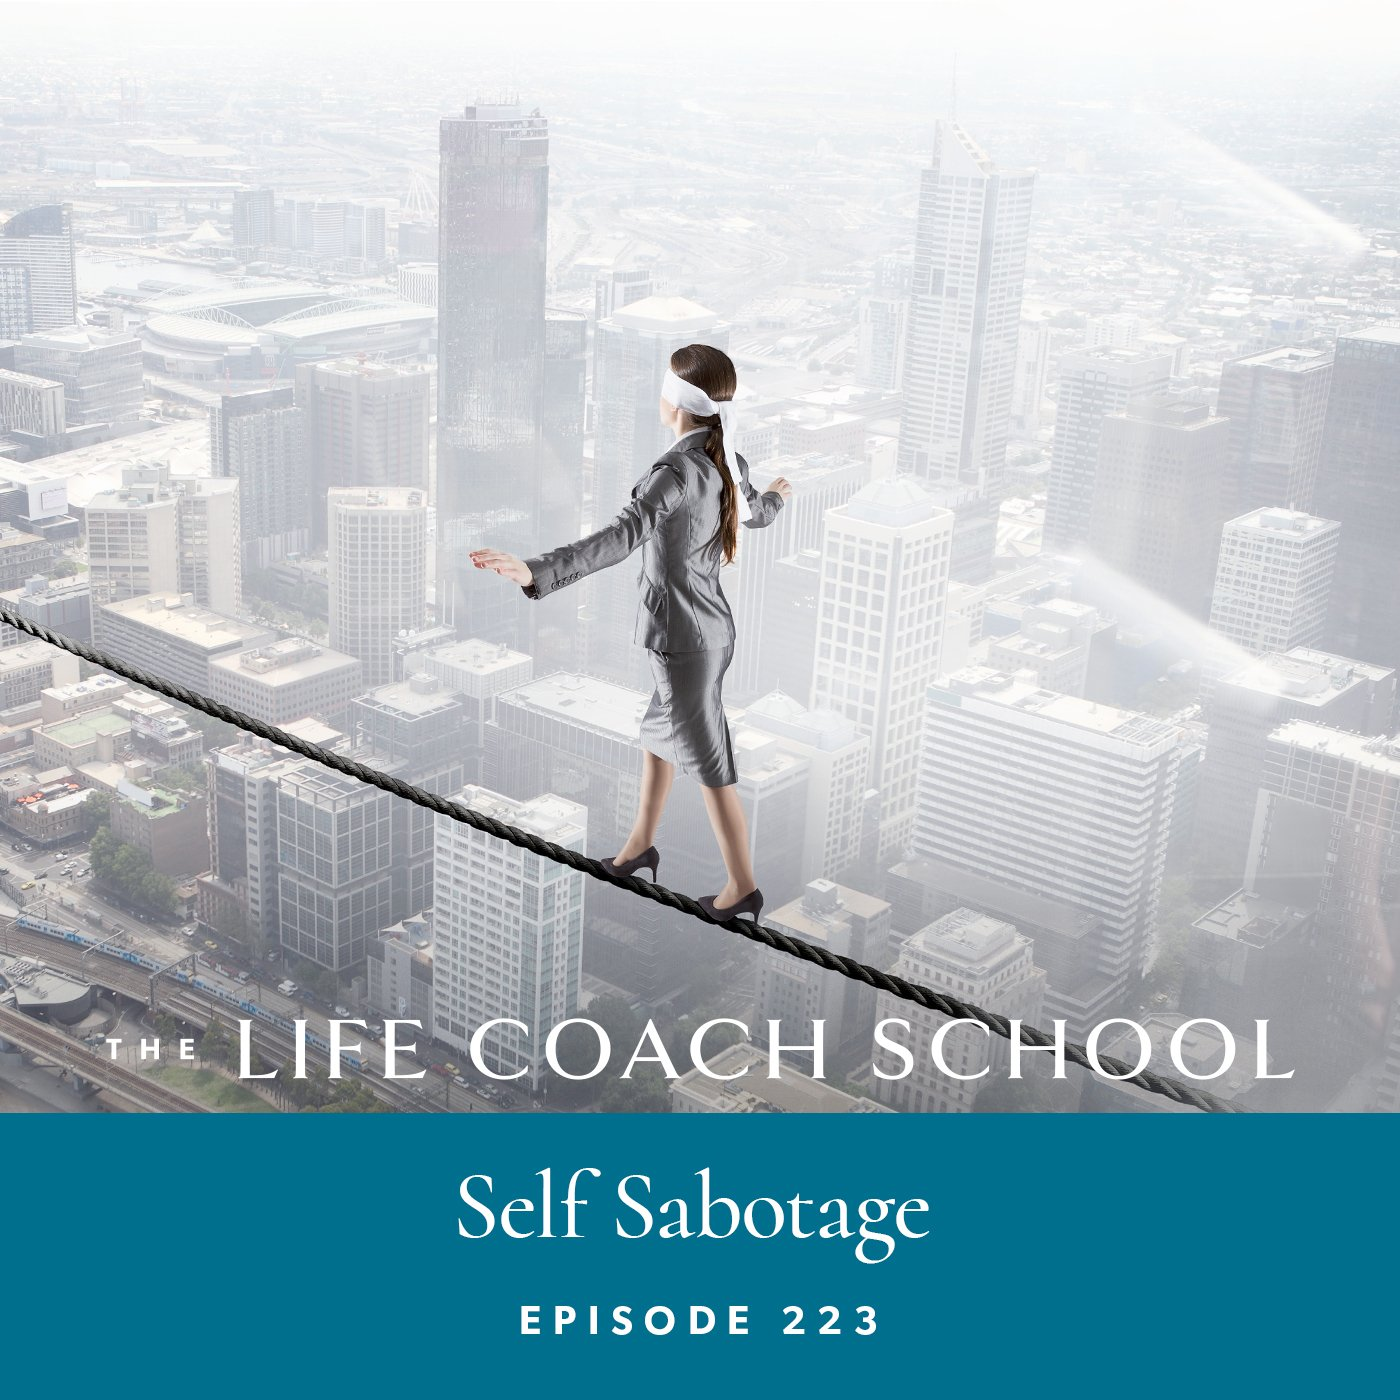 The Life Coach School Podcast with Brooke Castillo | Episode 223 | Self Sabotage